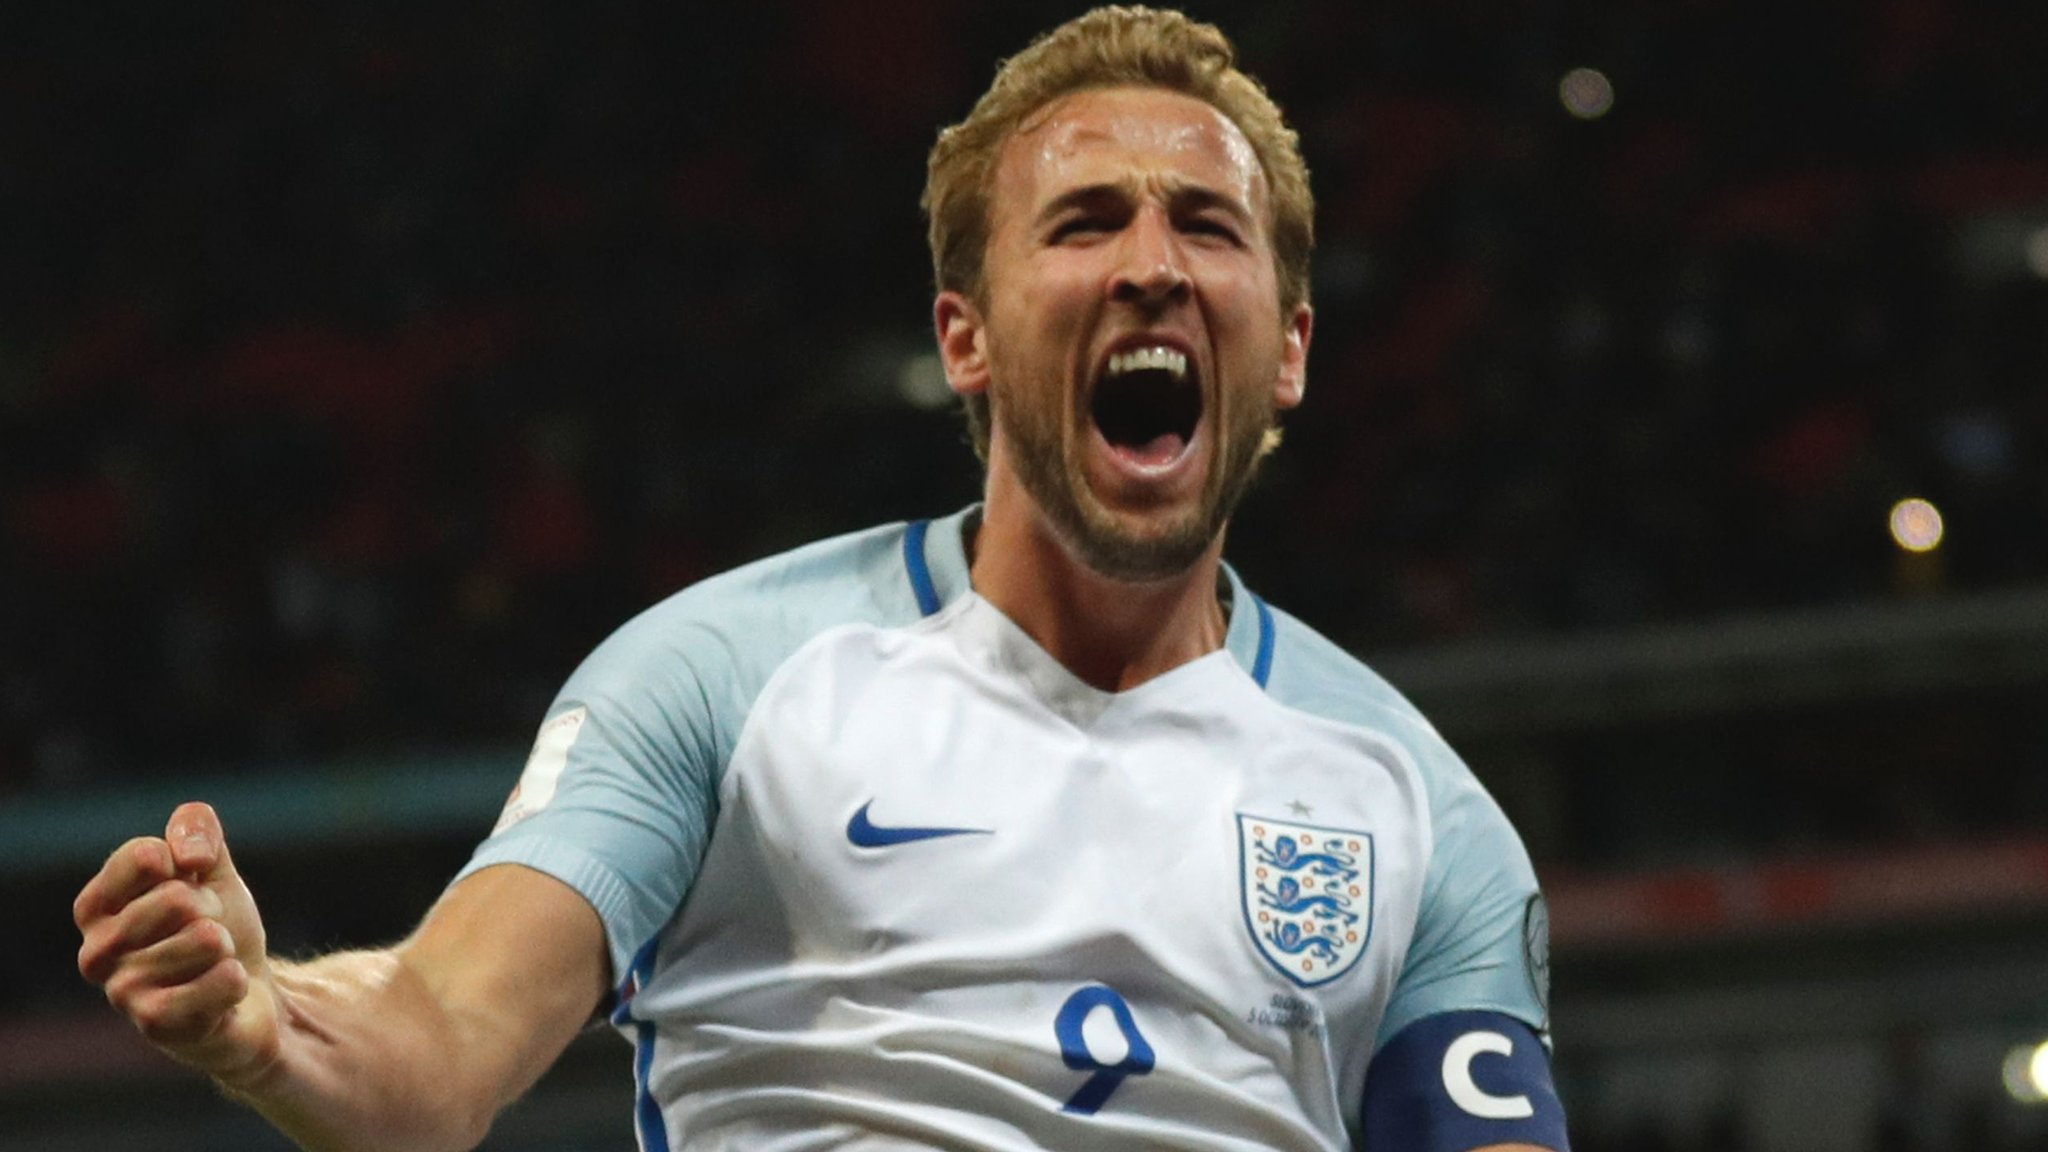 'If England don't qualify from the group, it's time to pack it in' - reaction to draw